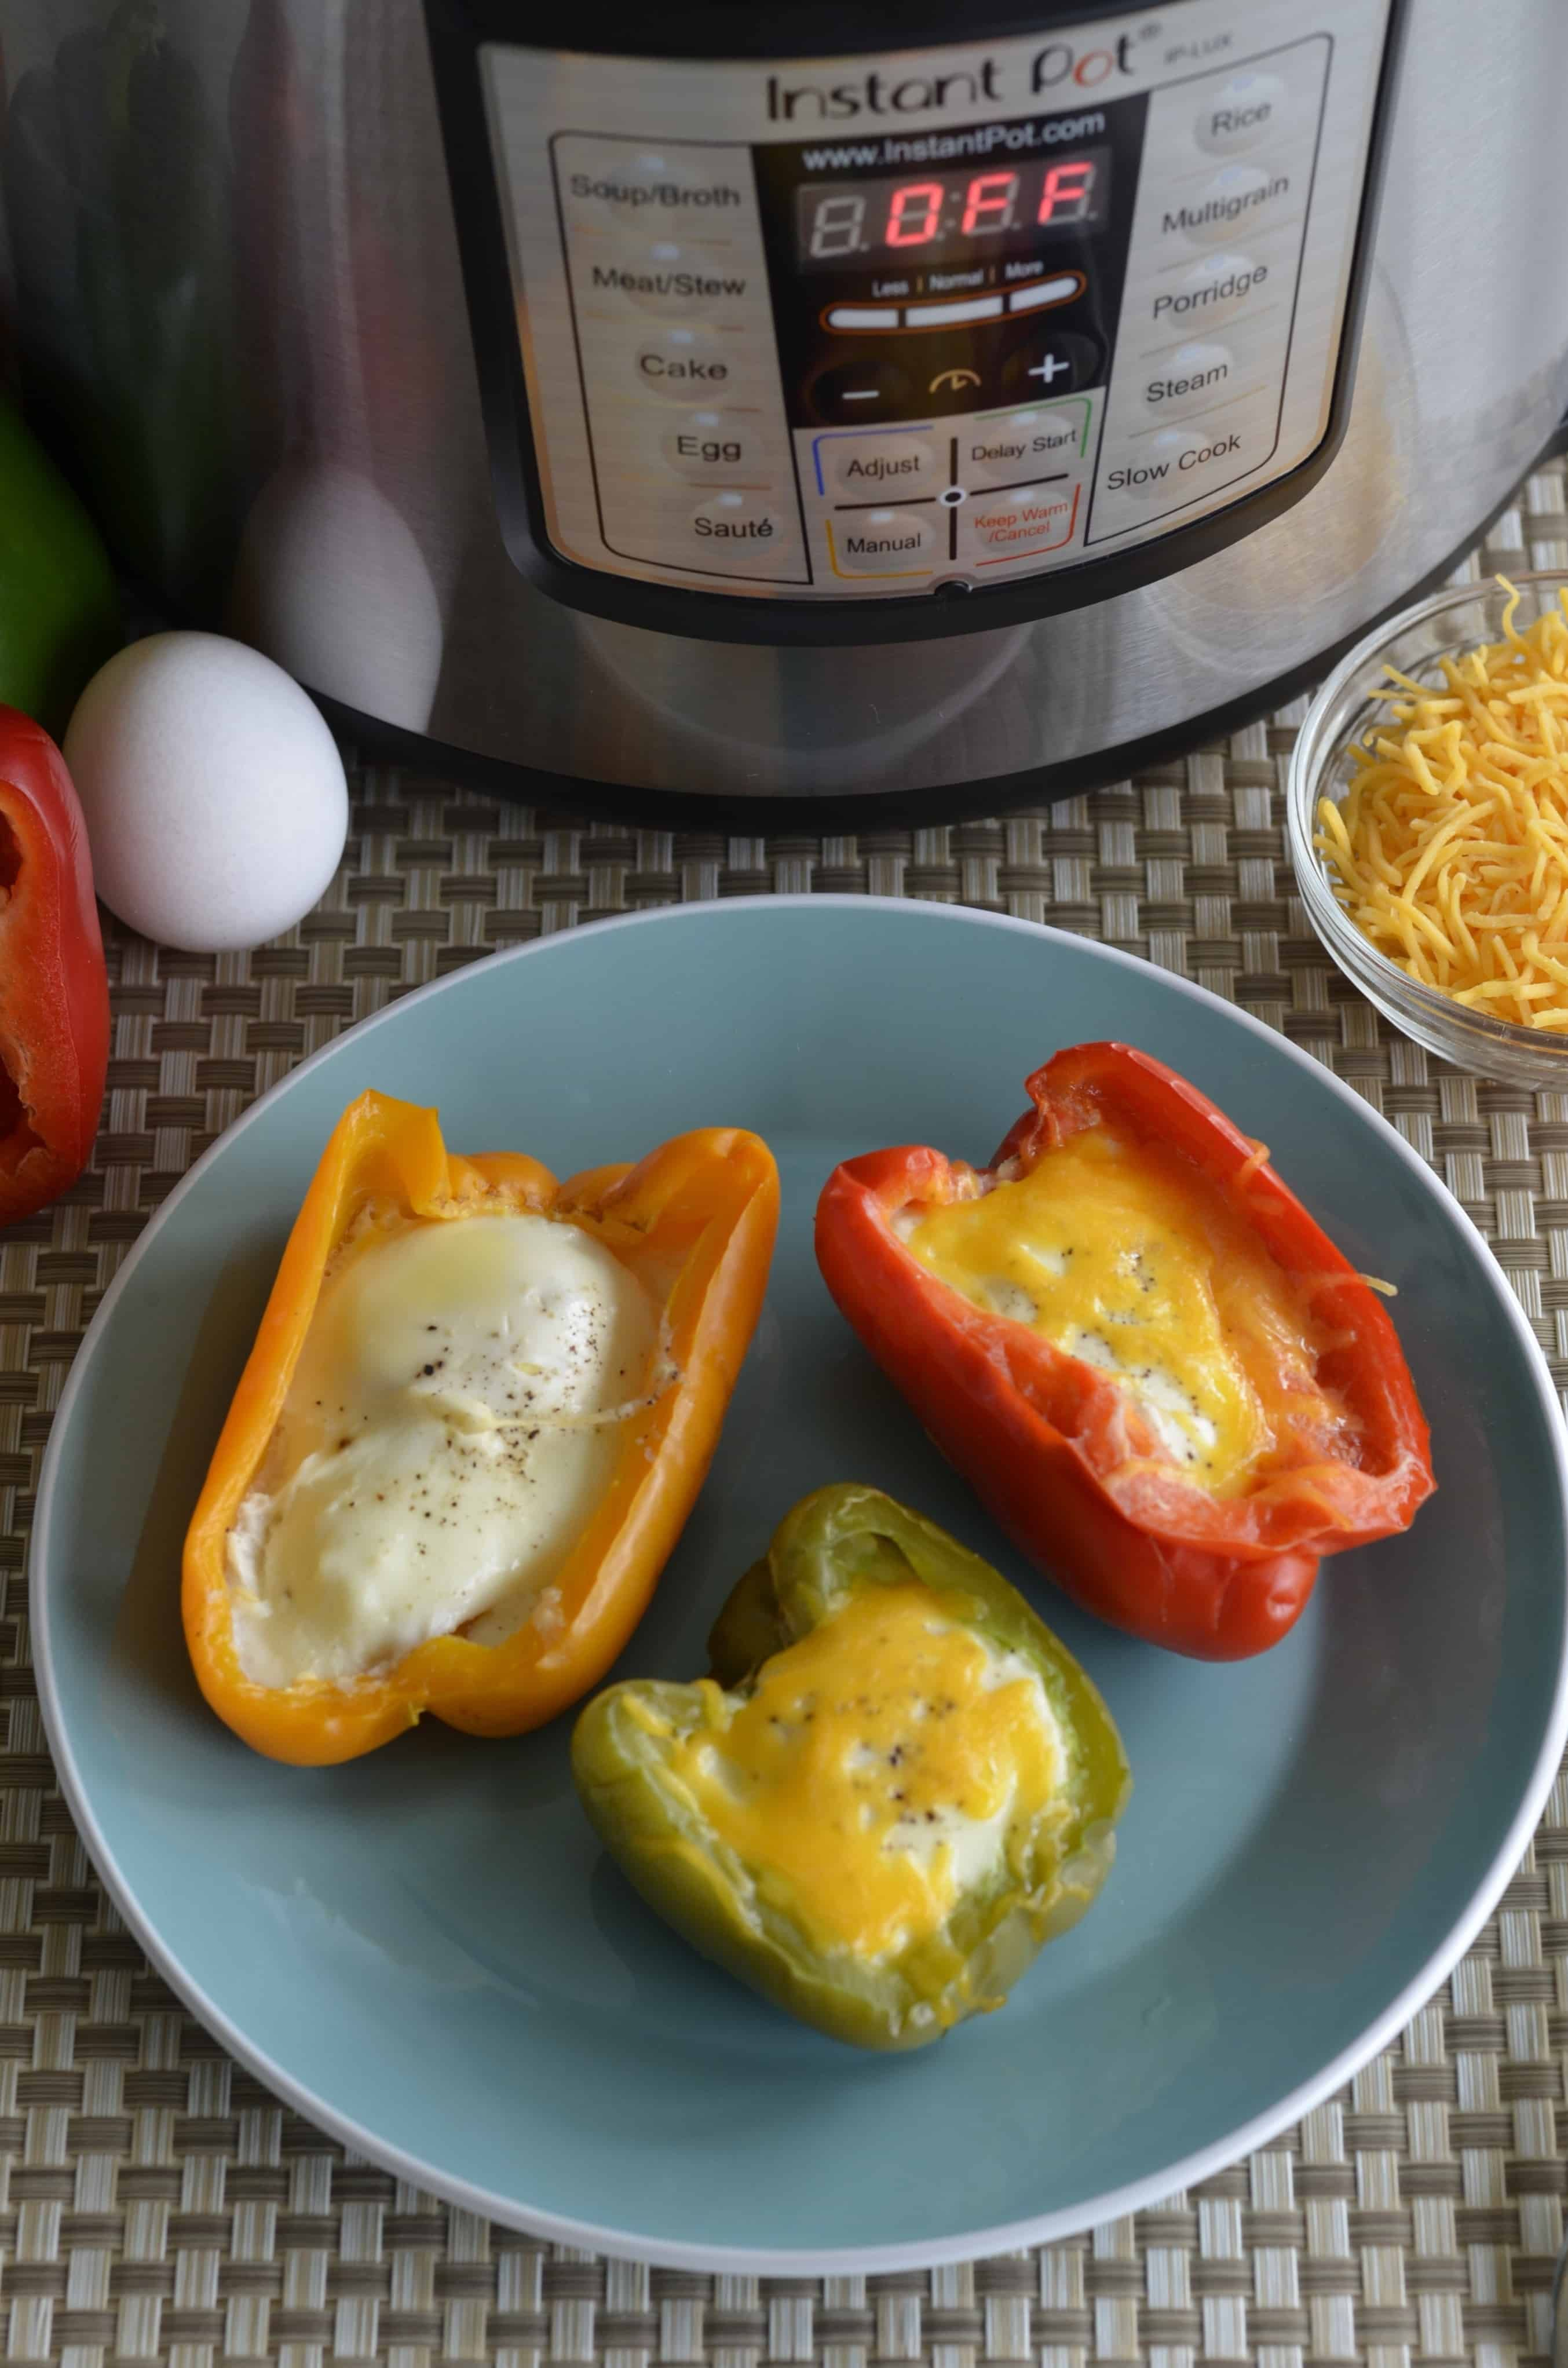 Keto Egg Stuffed Bell Peppersmade in Instant Pot | Everyday Ketogenic #stuffedbellpeppers